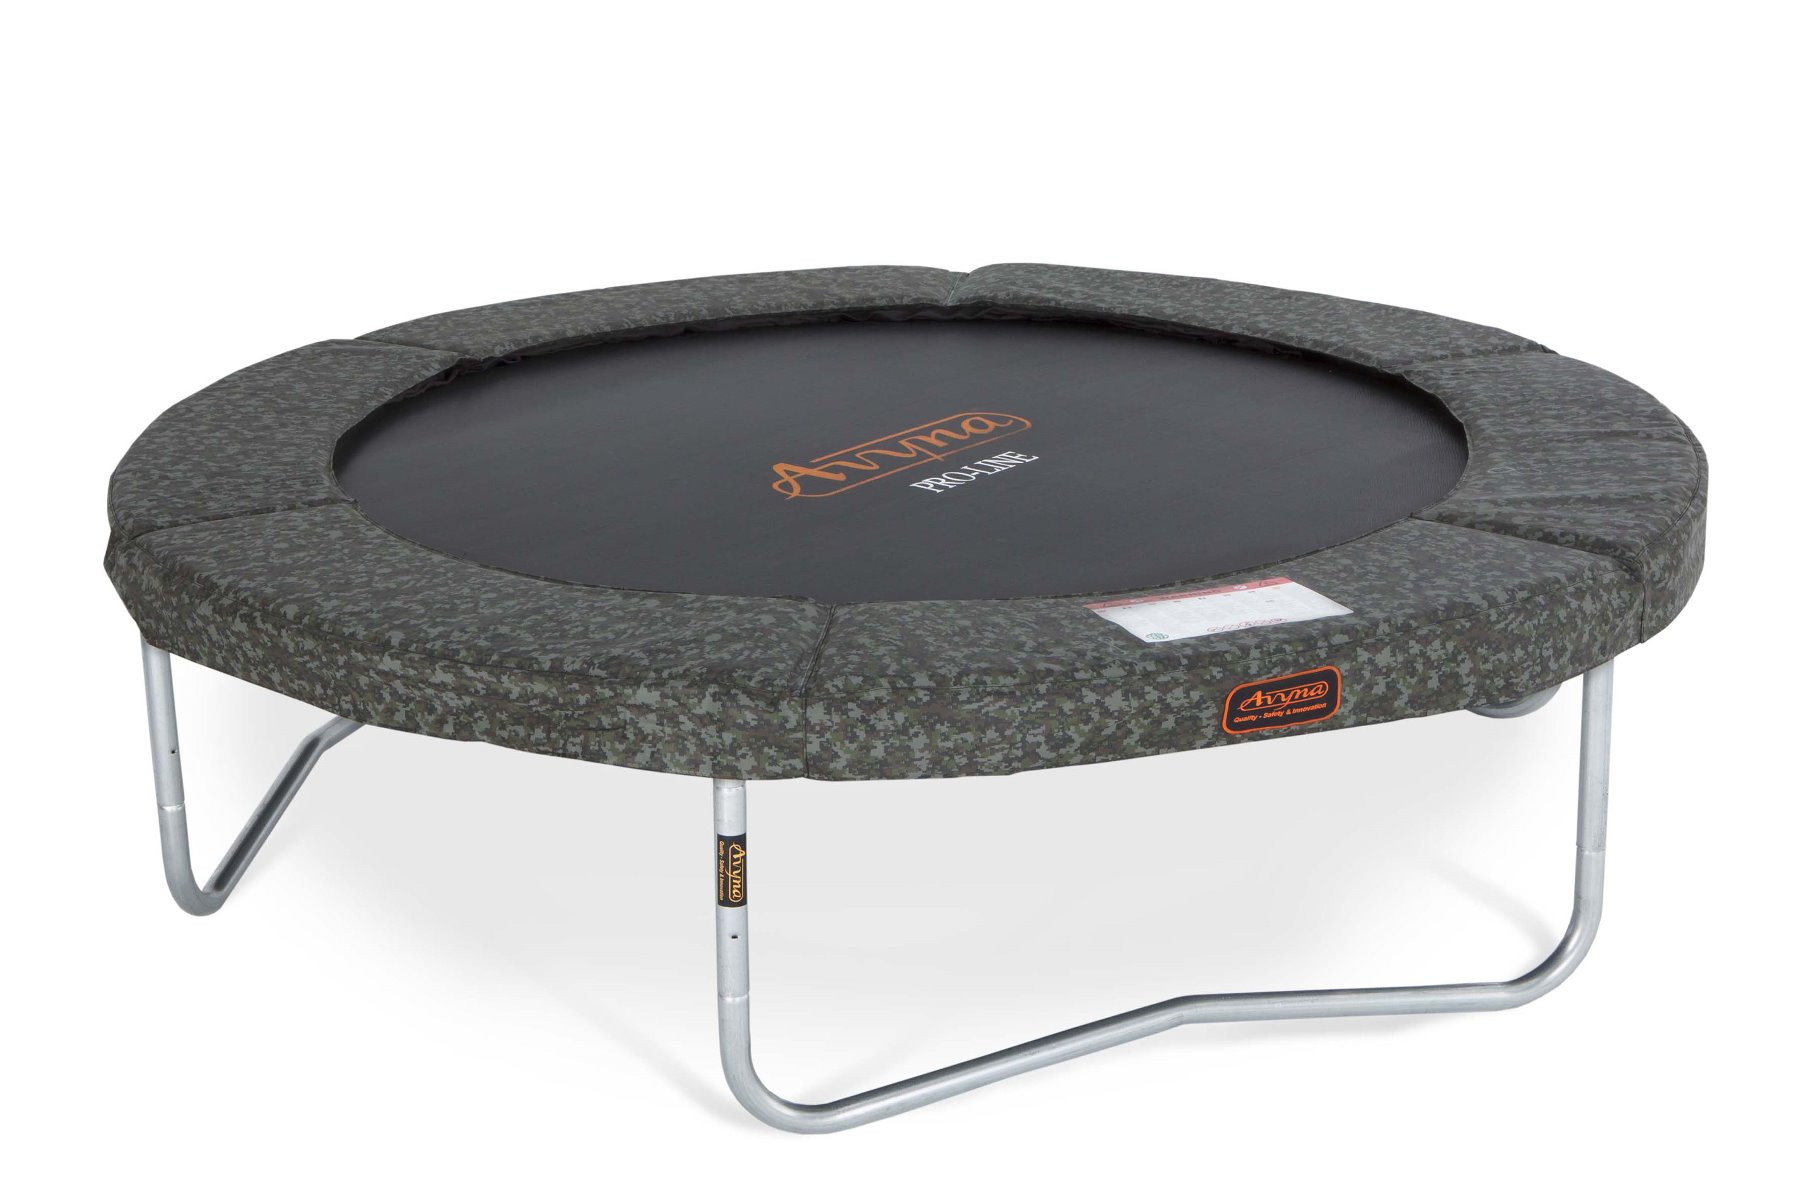 Avyna PRO-LINE 2,00 (06 ft) trampoline Camouflage (CAM-06)